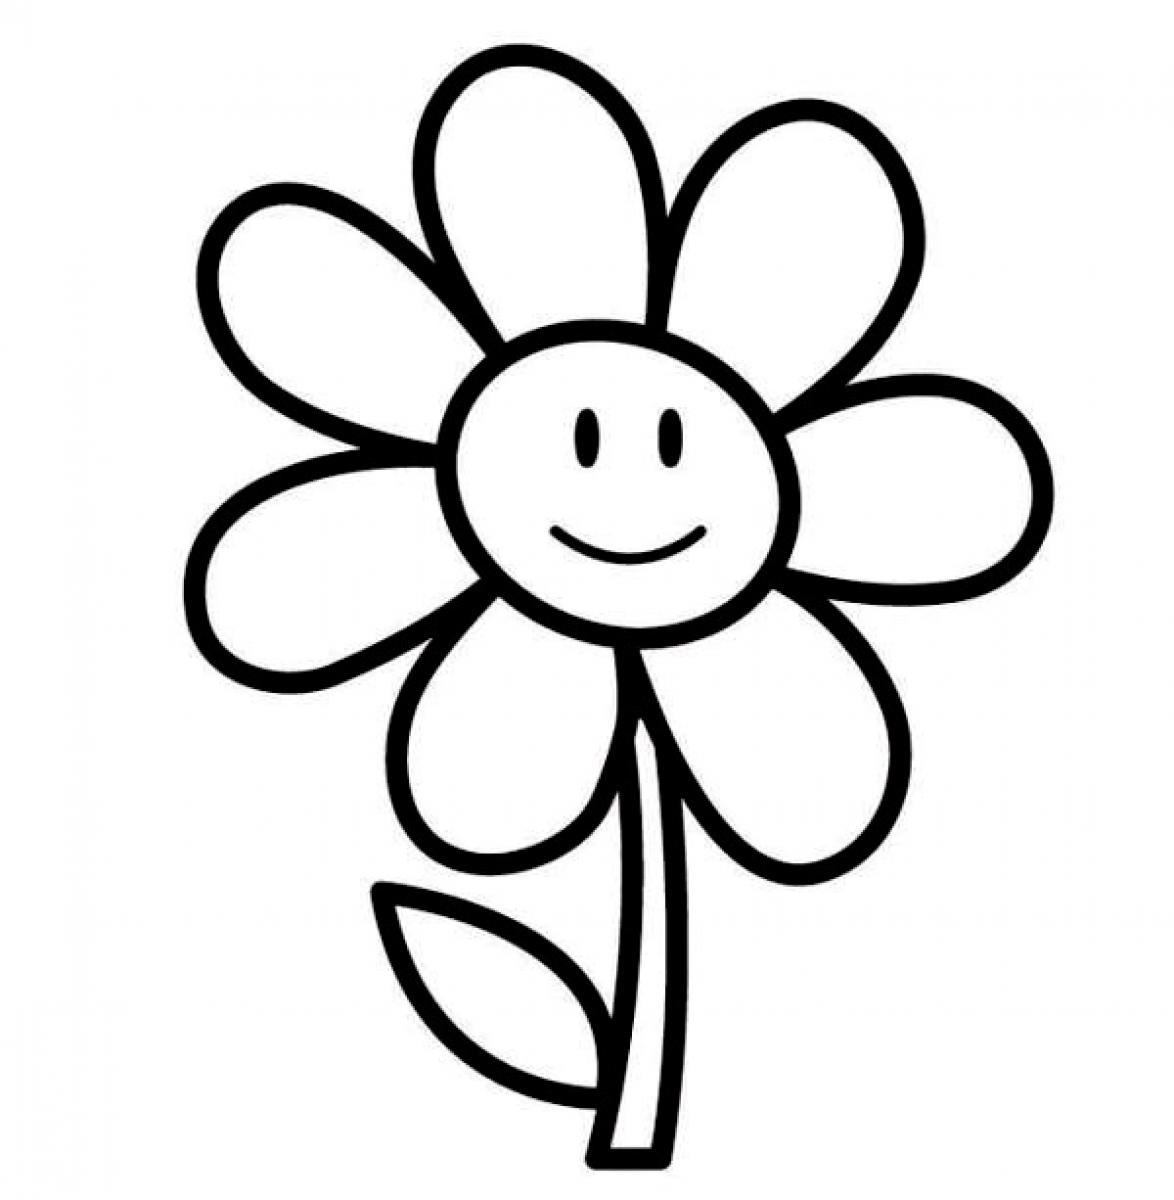 flower simple coloring pages - photo#38